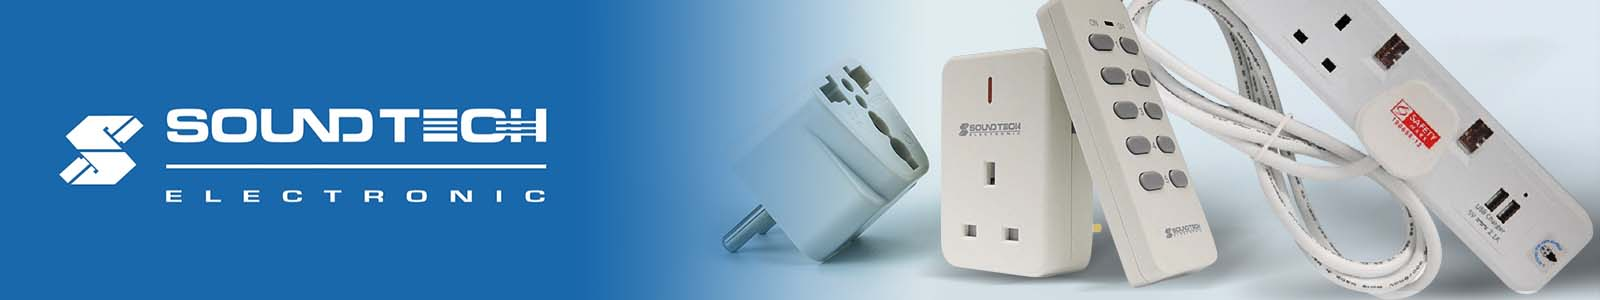 Soundteoh for extension cords, power adapters, power converters, lights and more